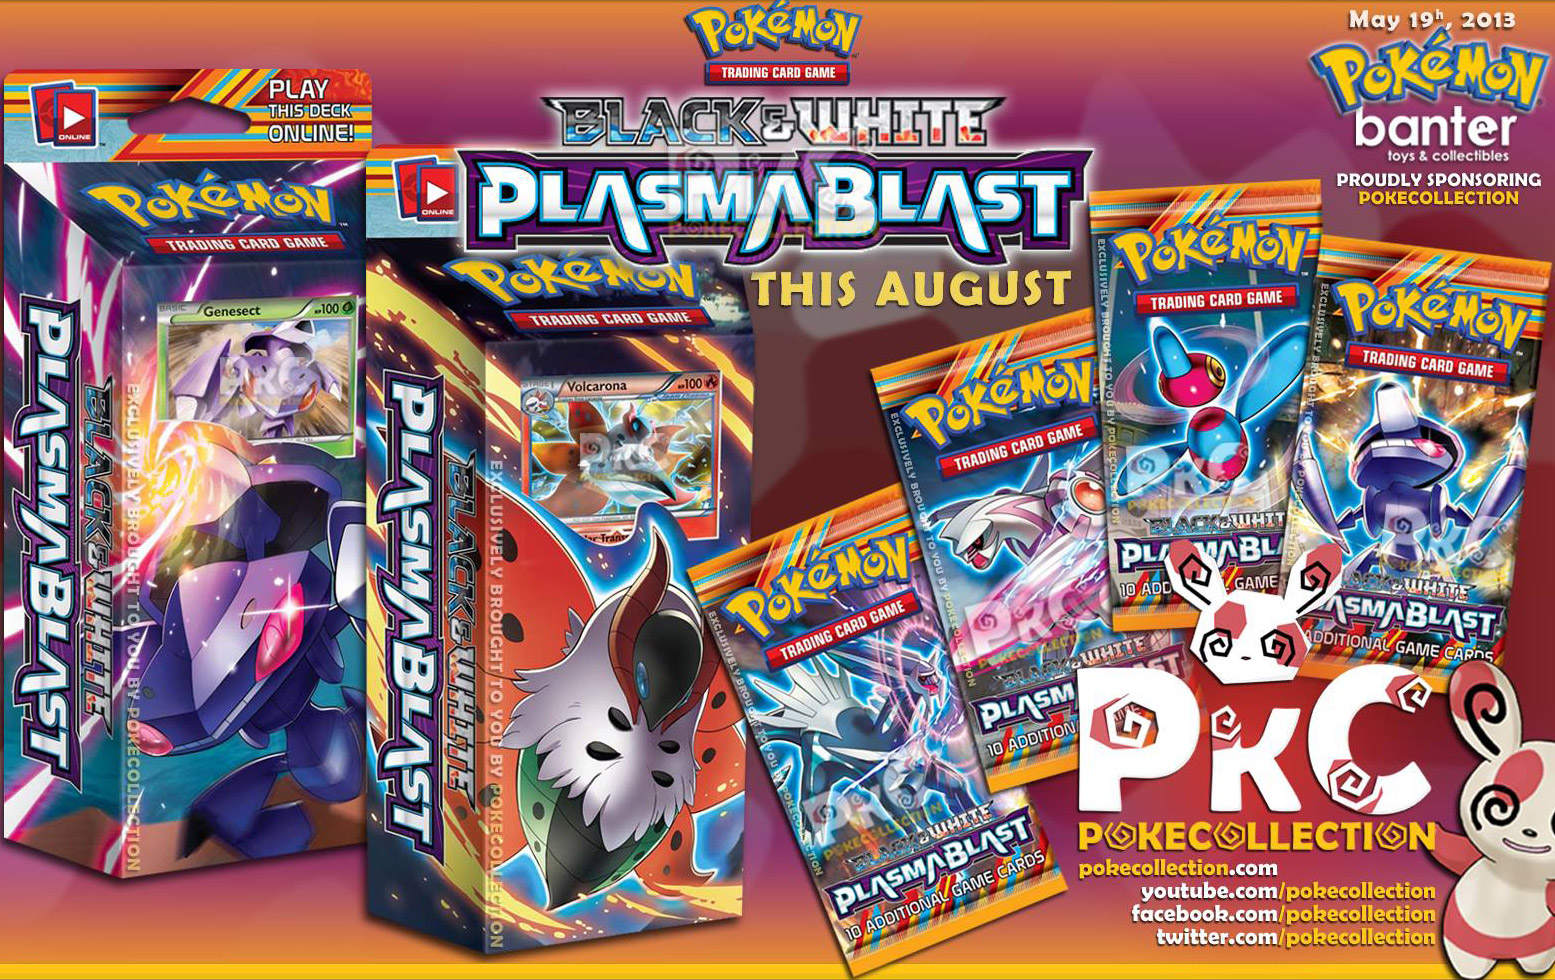 Plasma Blast Booster Packs and Theme Decks